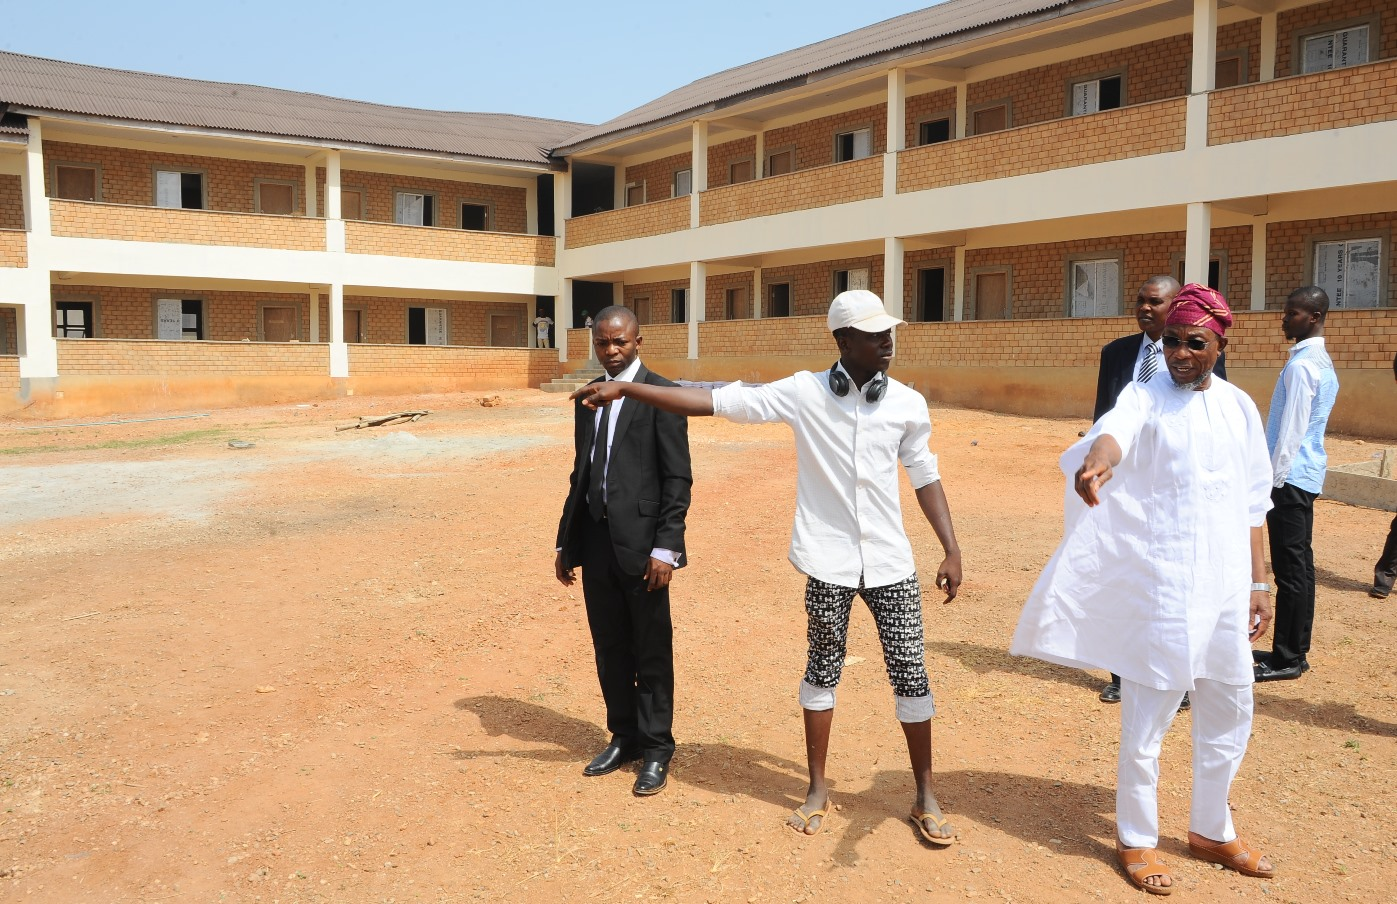 From right- Governor State of Osun, Ogbeni Rauf Aregbesola, the Project Manager, Taner Bicigil (2nd right), during the inspection of the on going Construction of Oshogbo High School on Wednesday 9-12-2015.